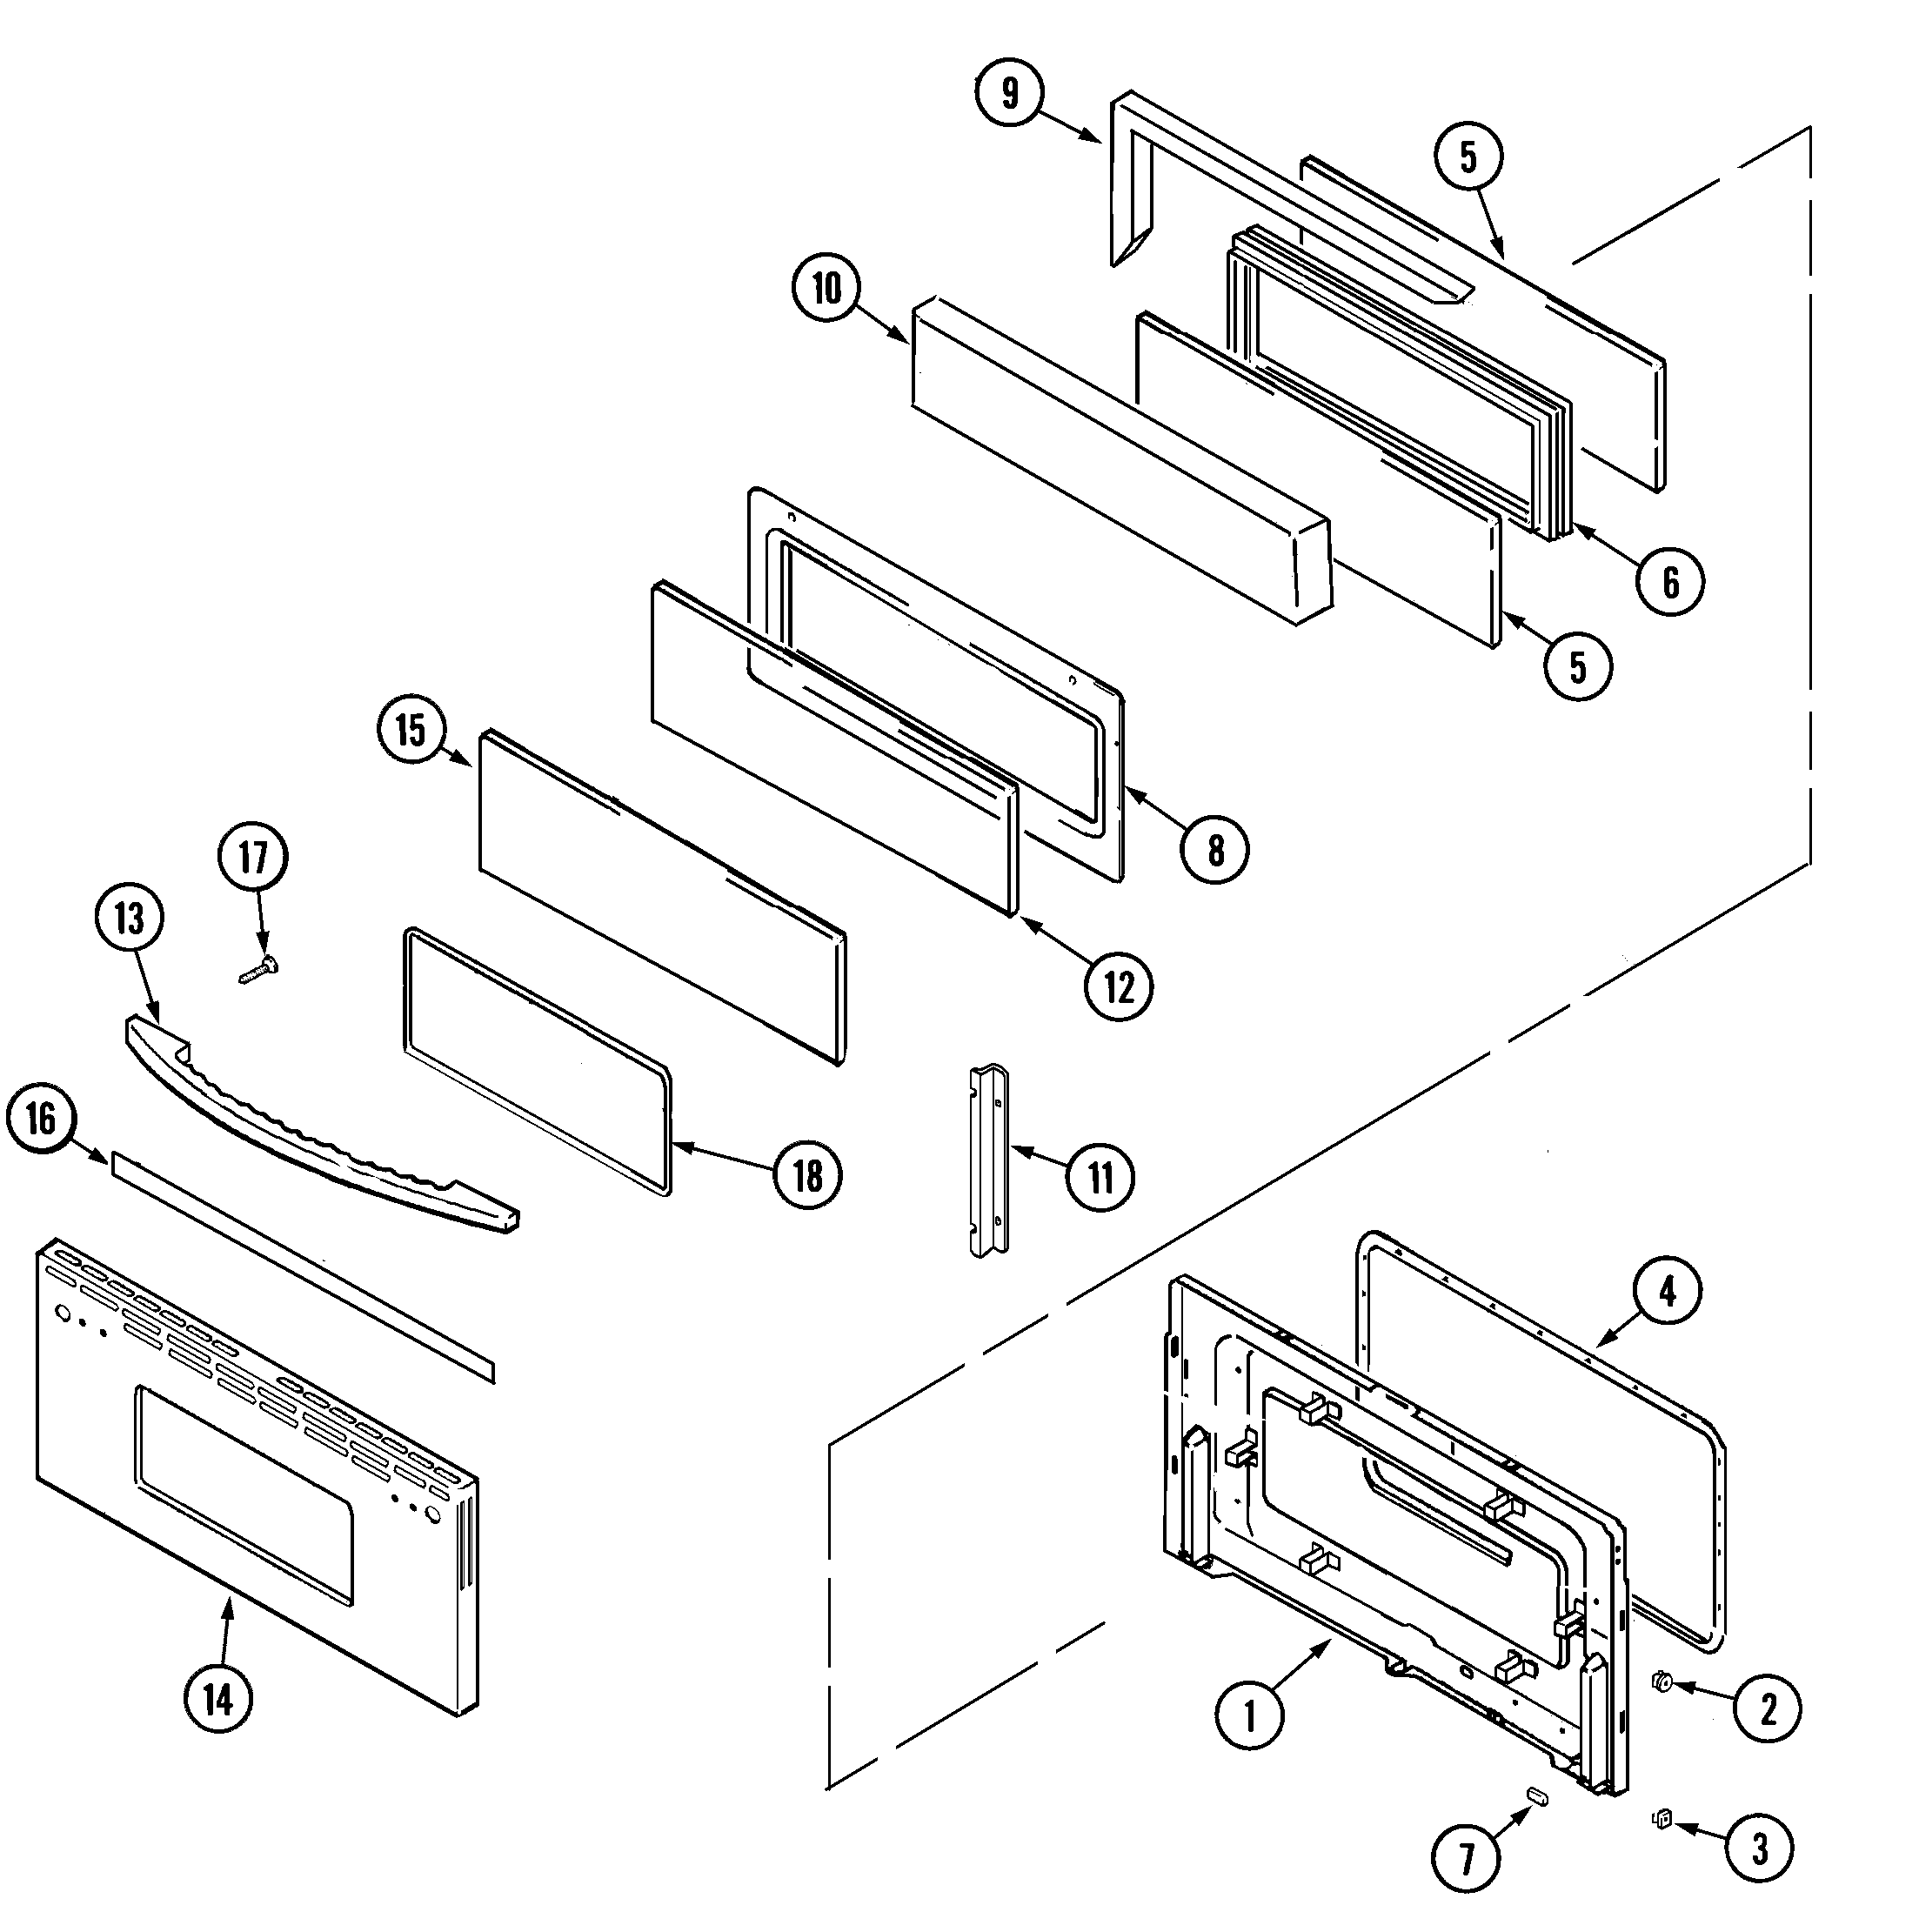 Maytag Surface Burner Wiring Diagram